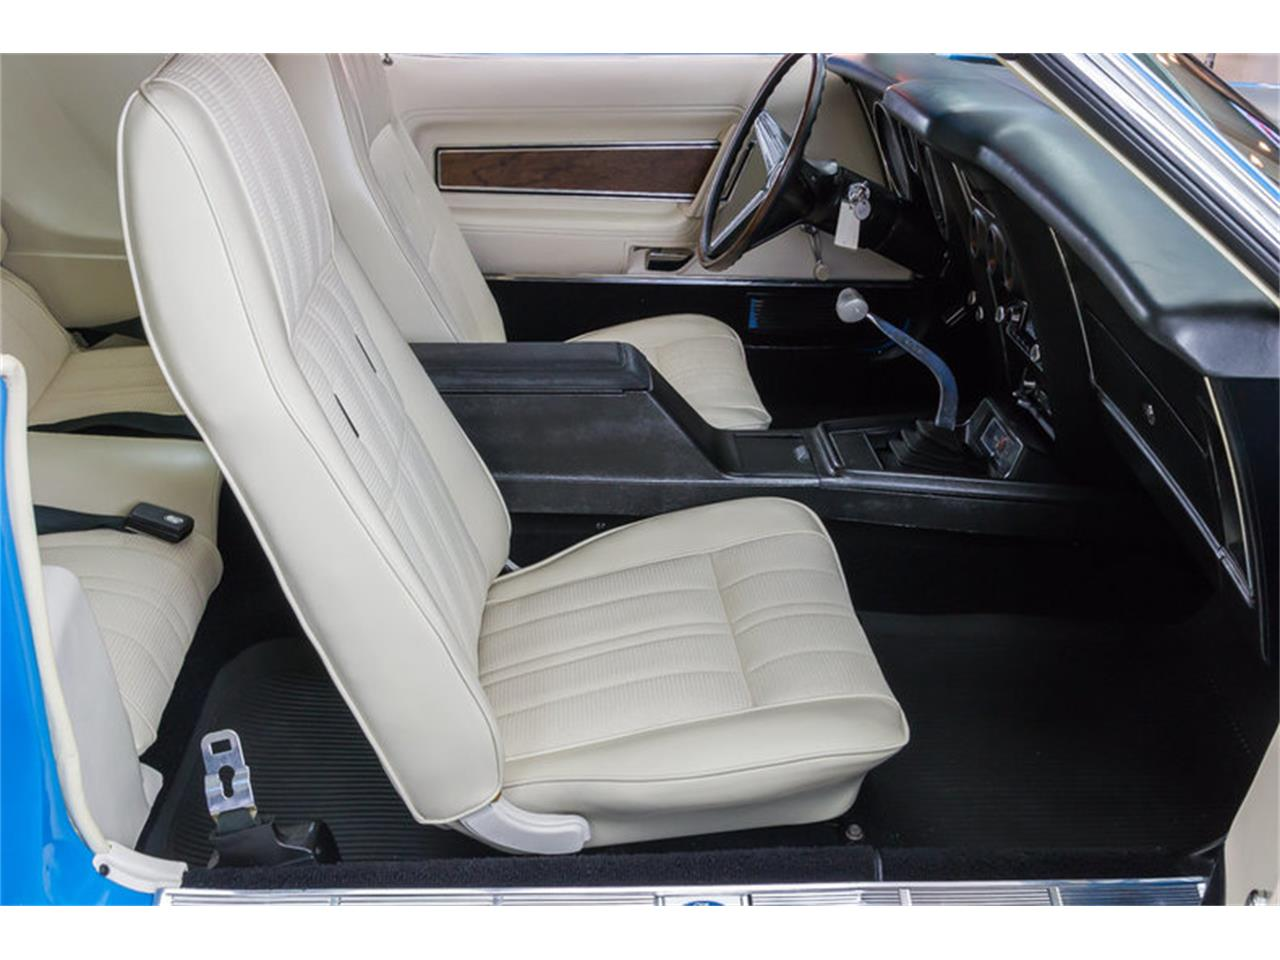 Large Picture of Classic '71 Ford Mustang located in Michigan - $79,900.00 Offered by Vanguard Motor Sales - IW4B